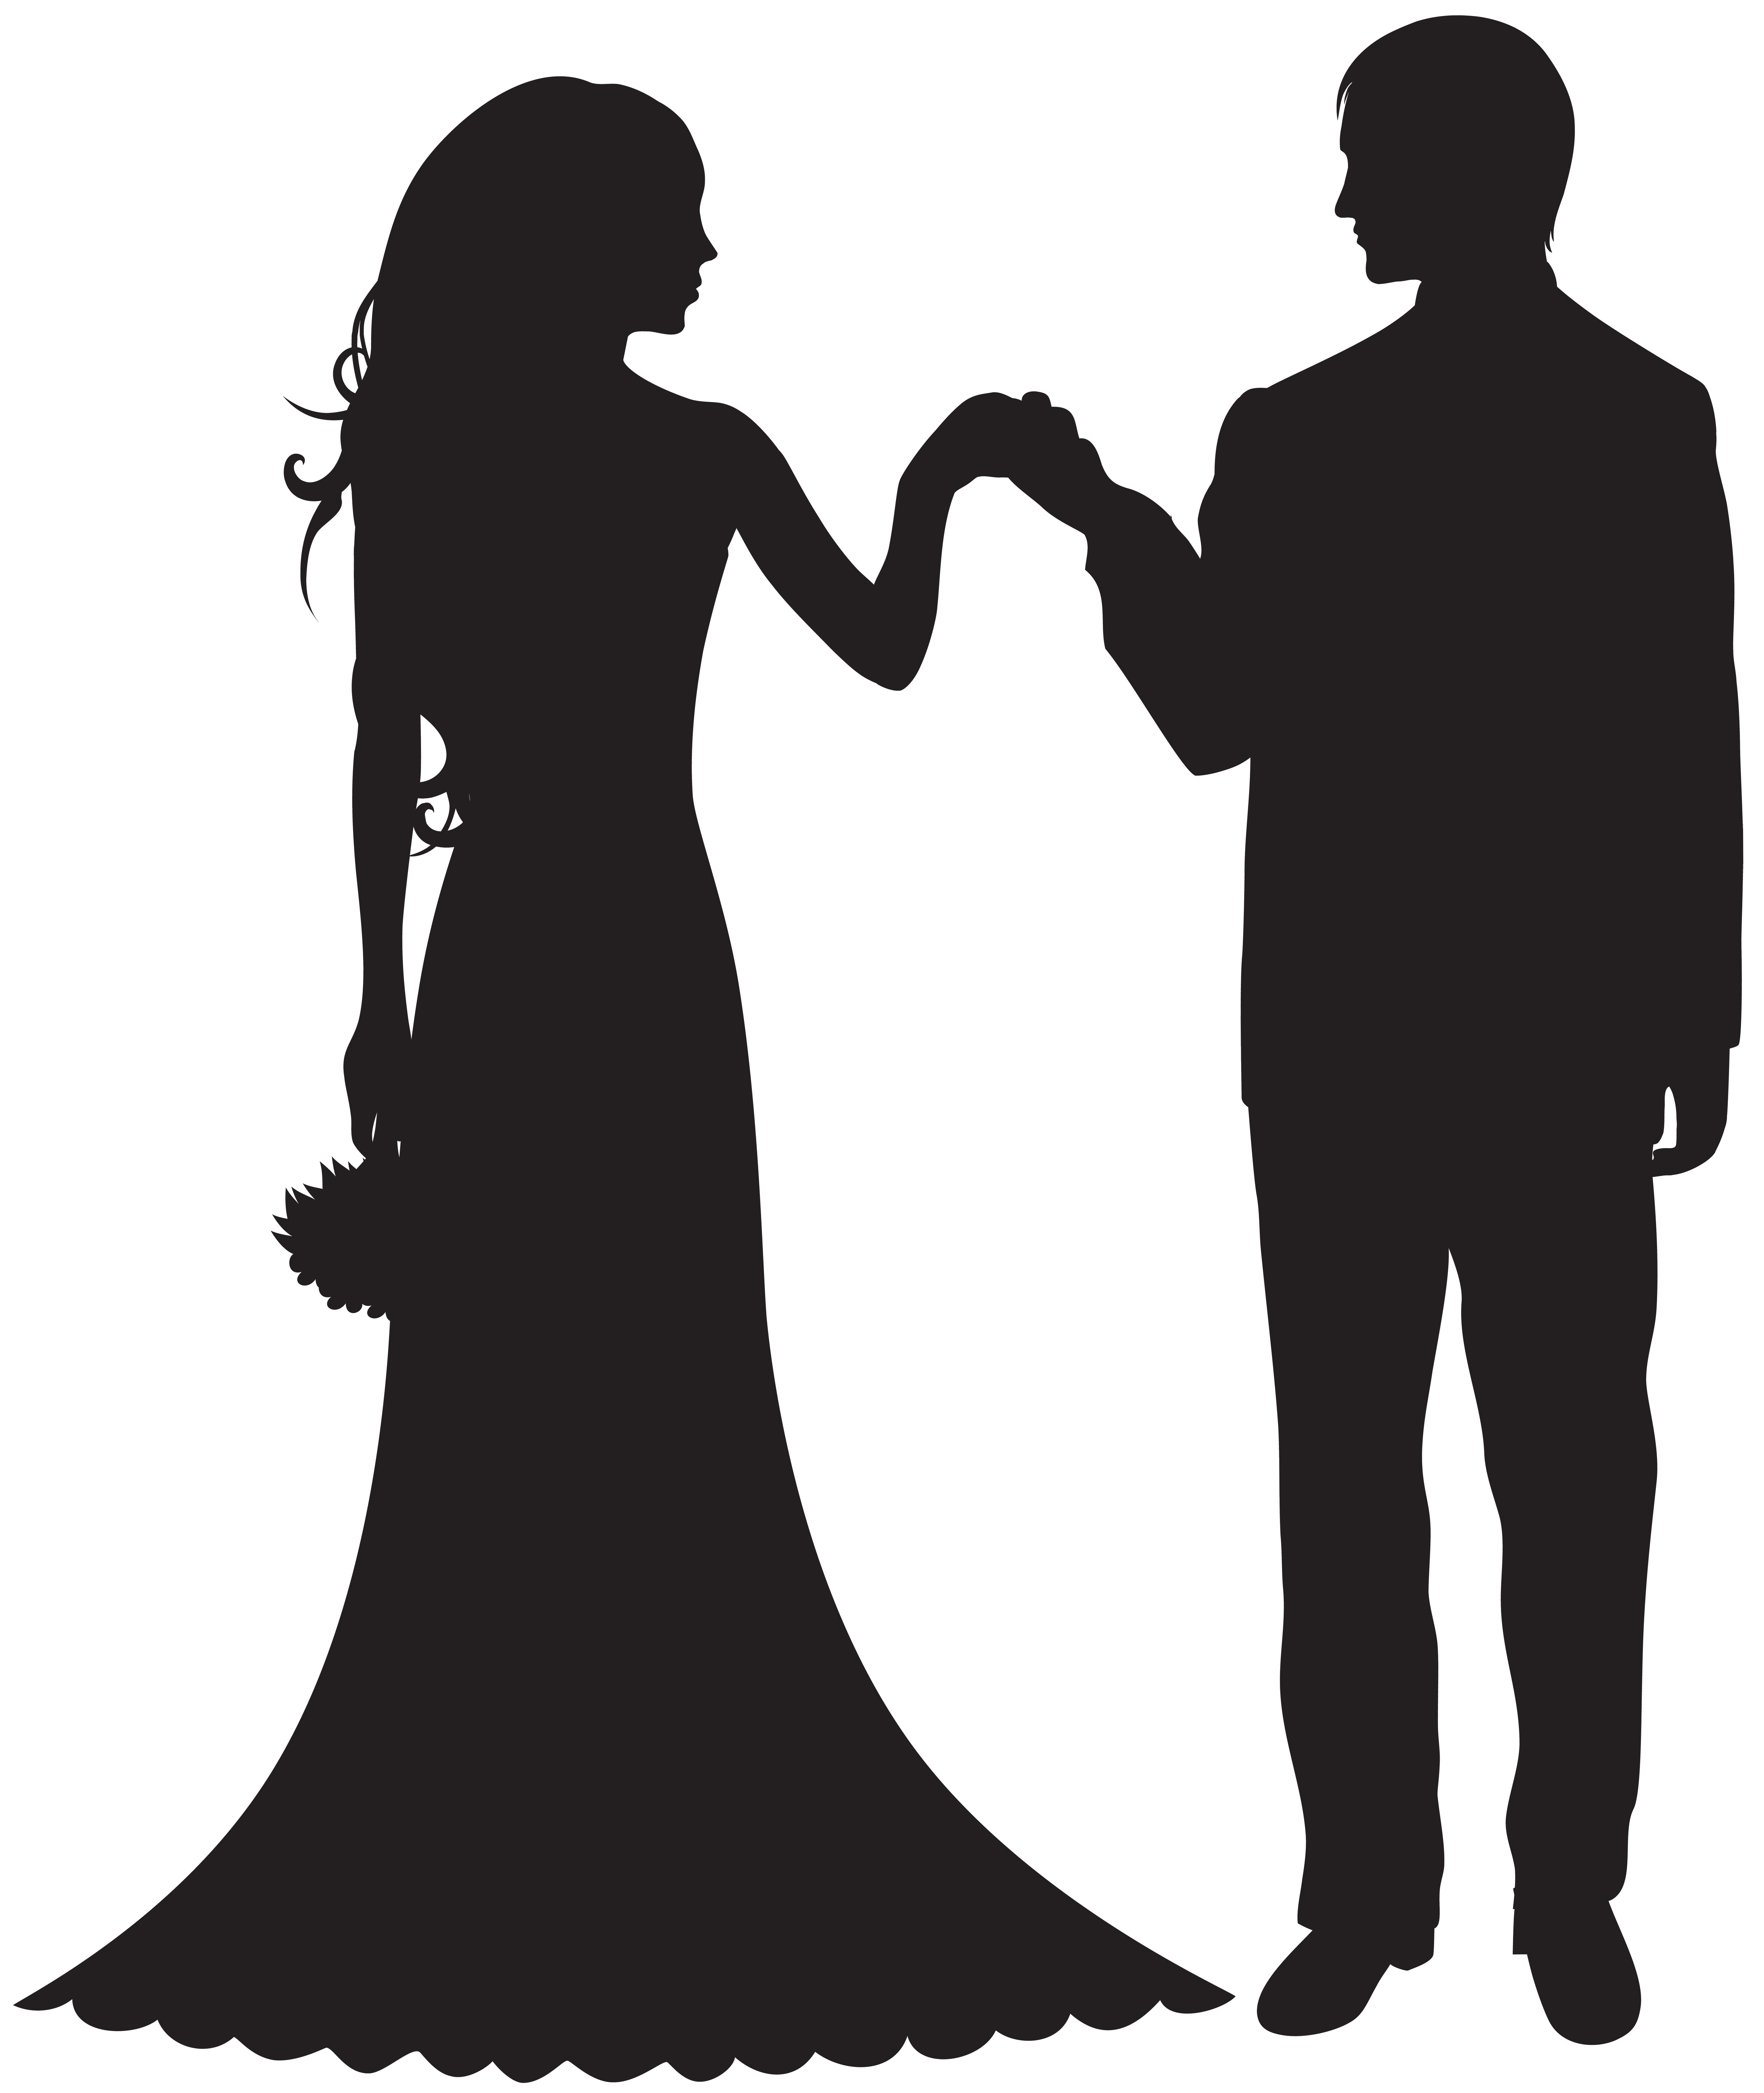 Groom clipart. Bride and png best